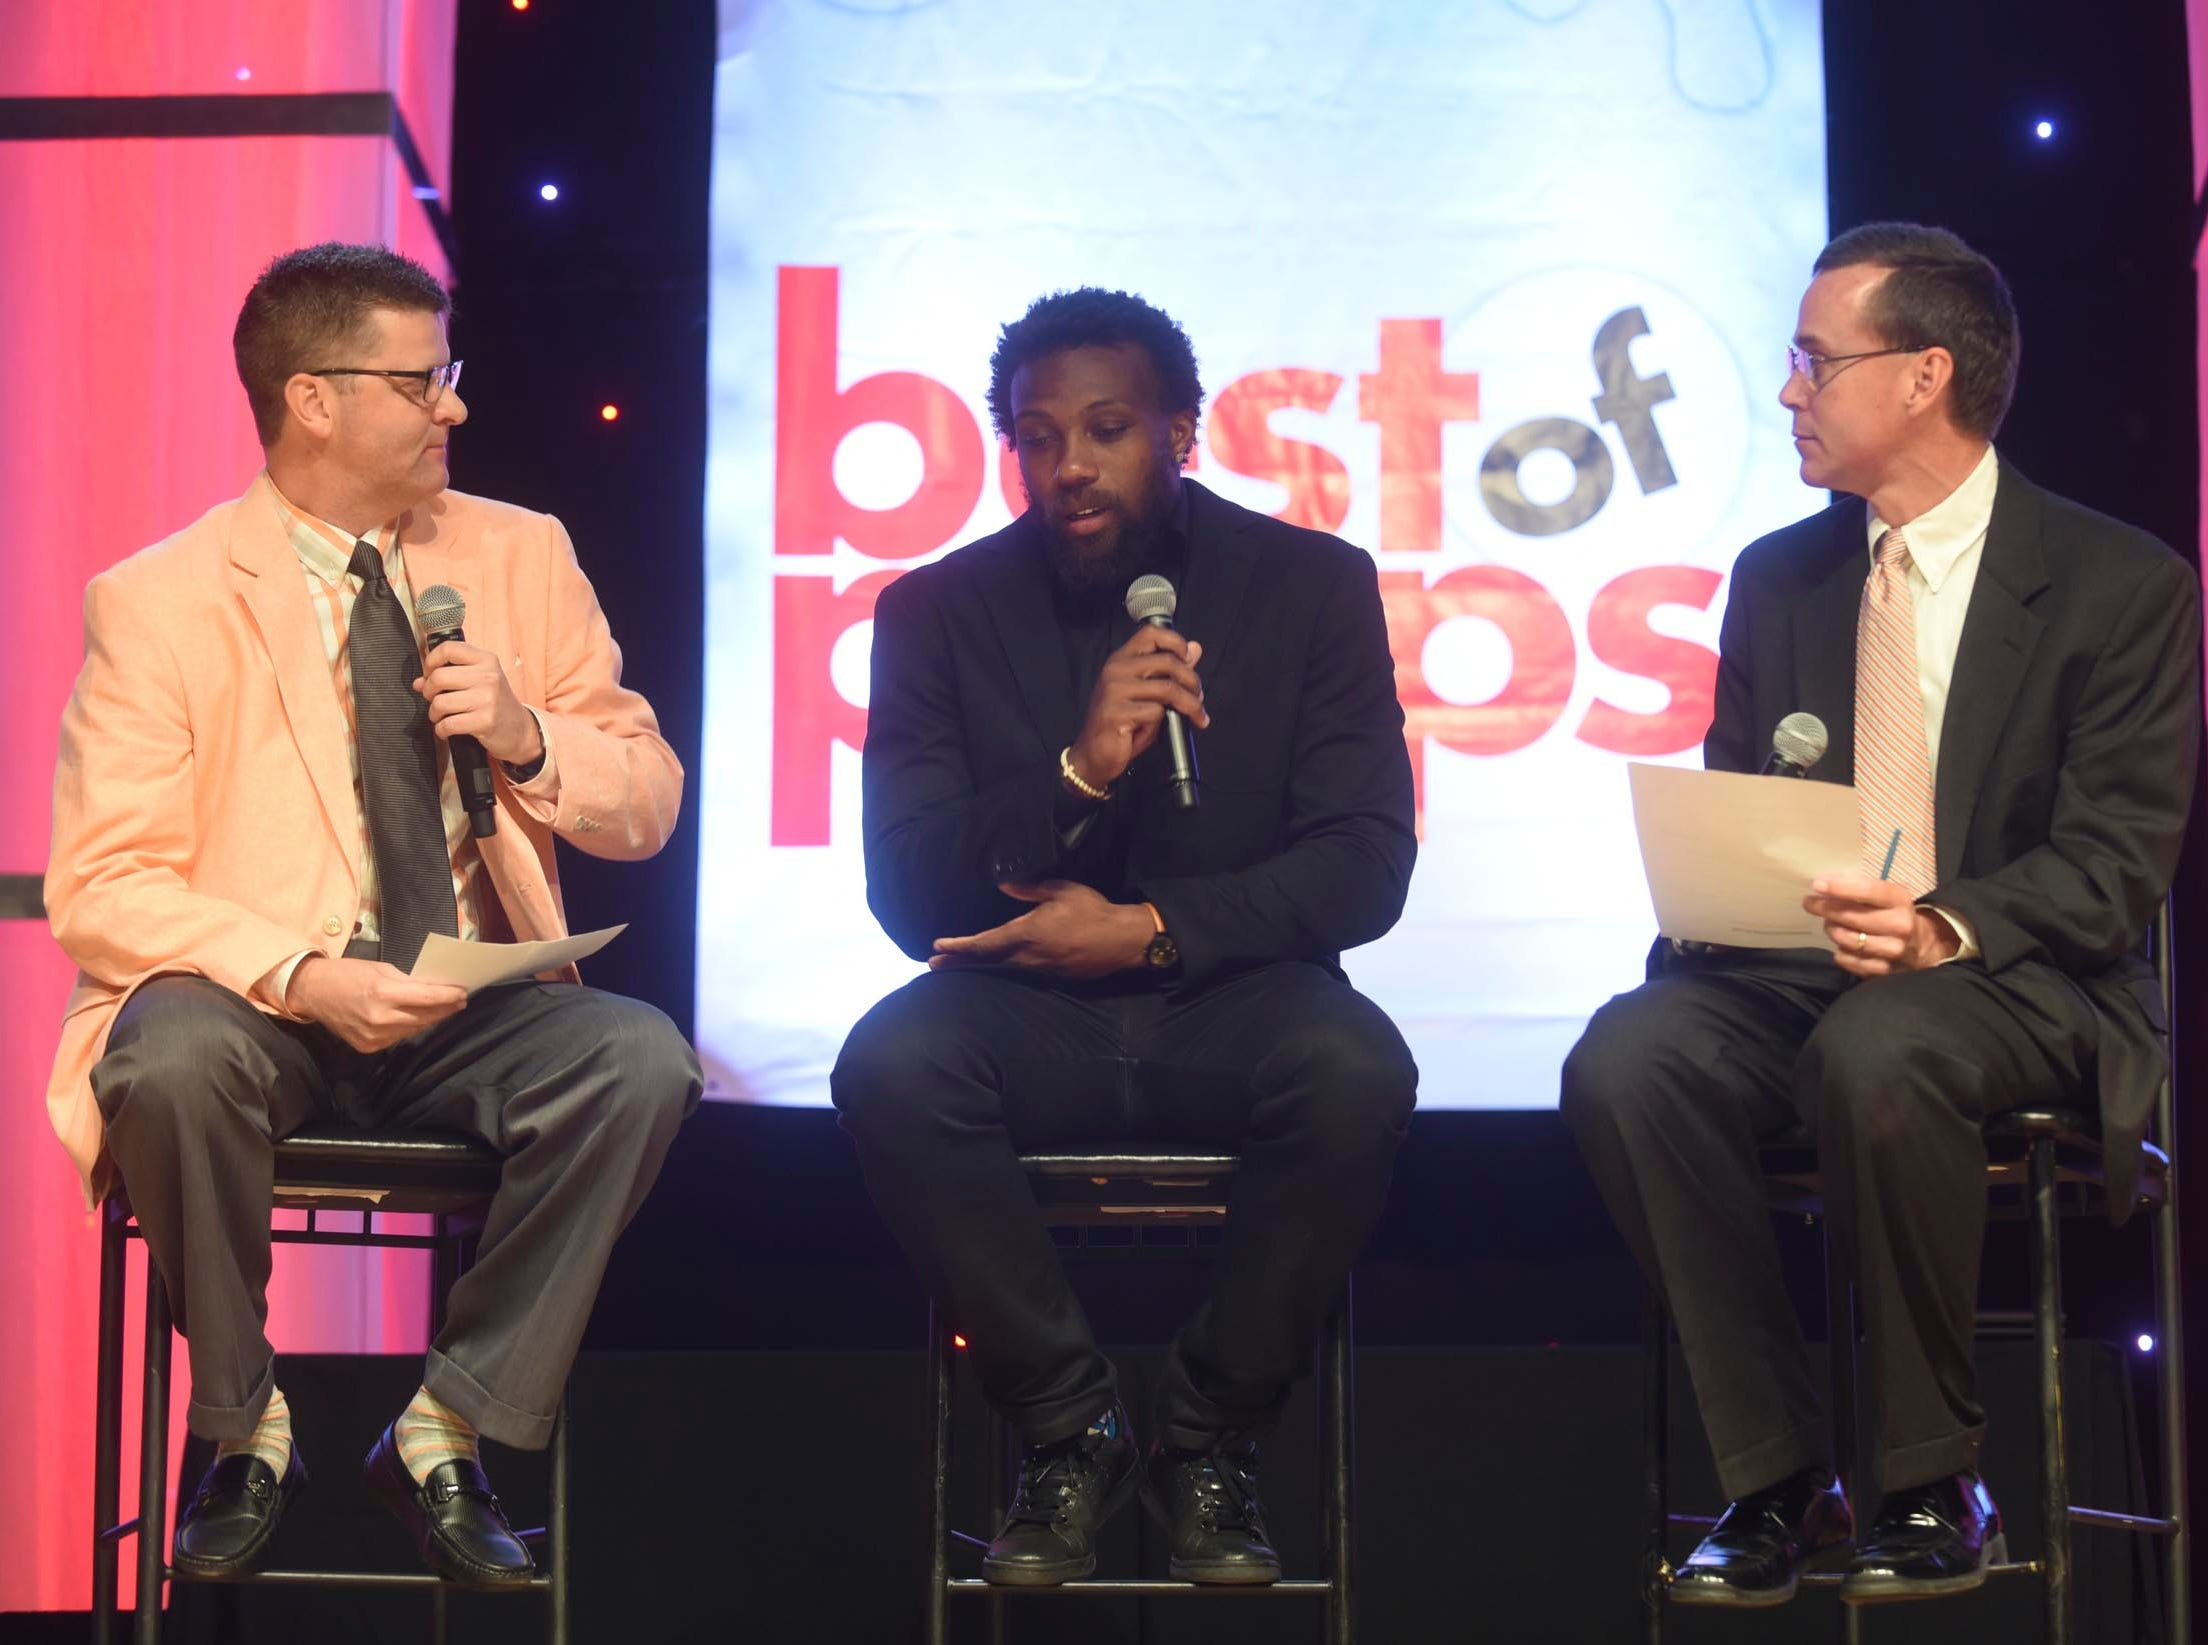 Kansas City Chiefs football player Eric Berry, center, answers questions from Stephen Hargis, left, and David Paschall at the Best of Preps banquet Thursday, June 9, 2016, at the Chattanooga Convention Center.